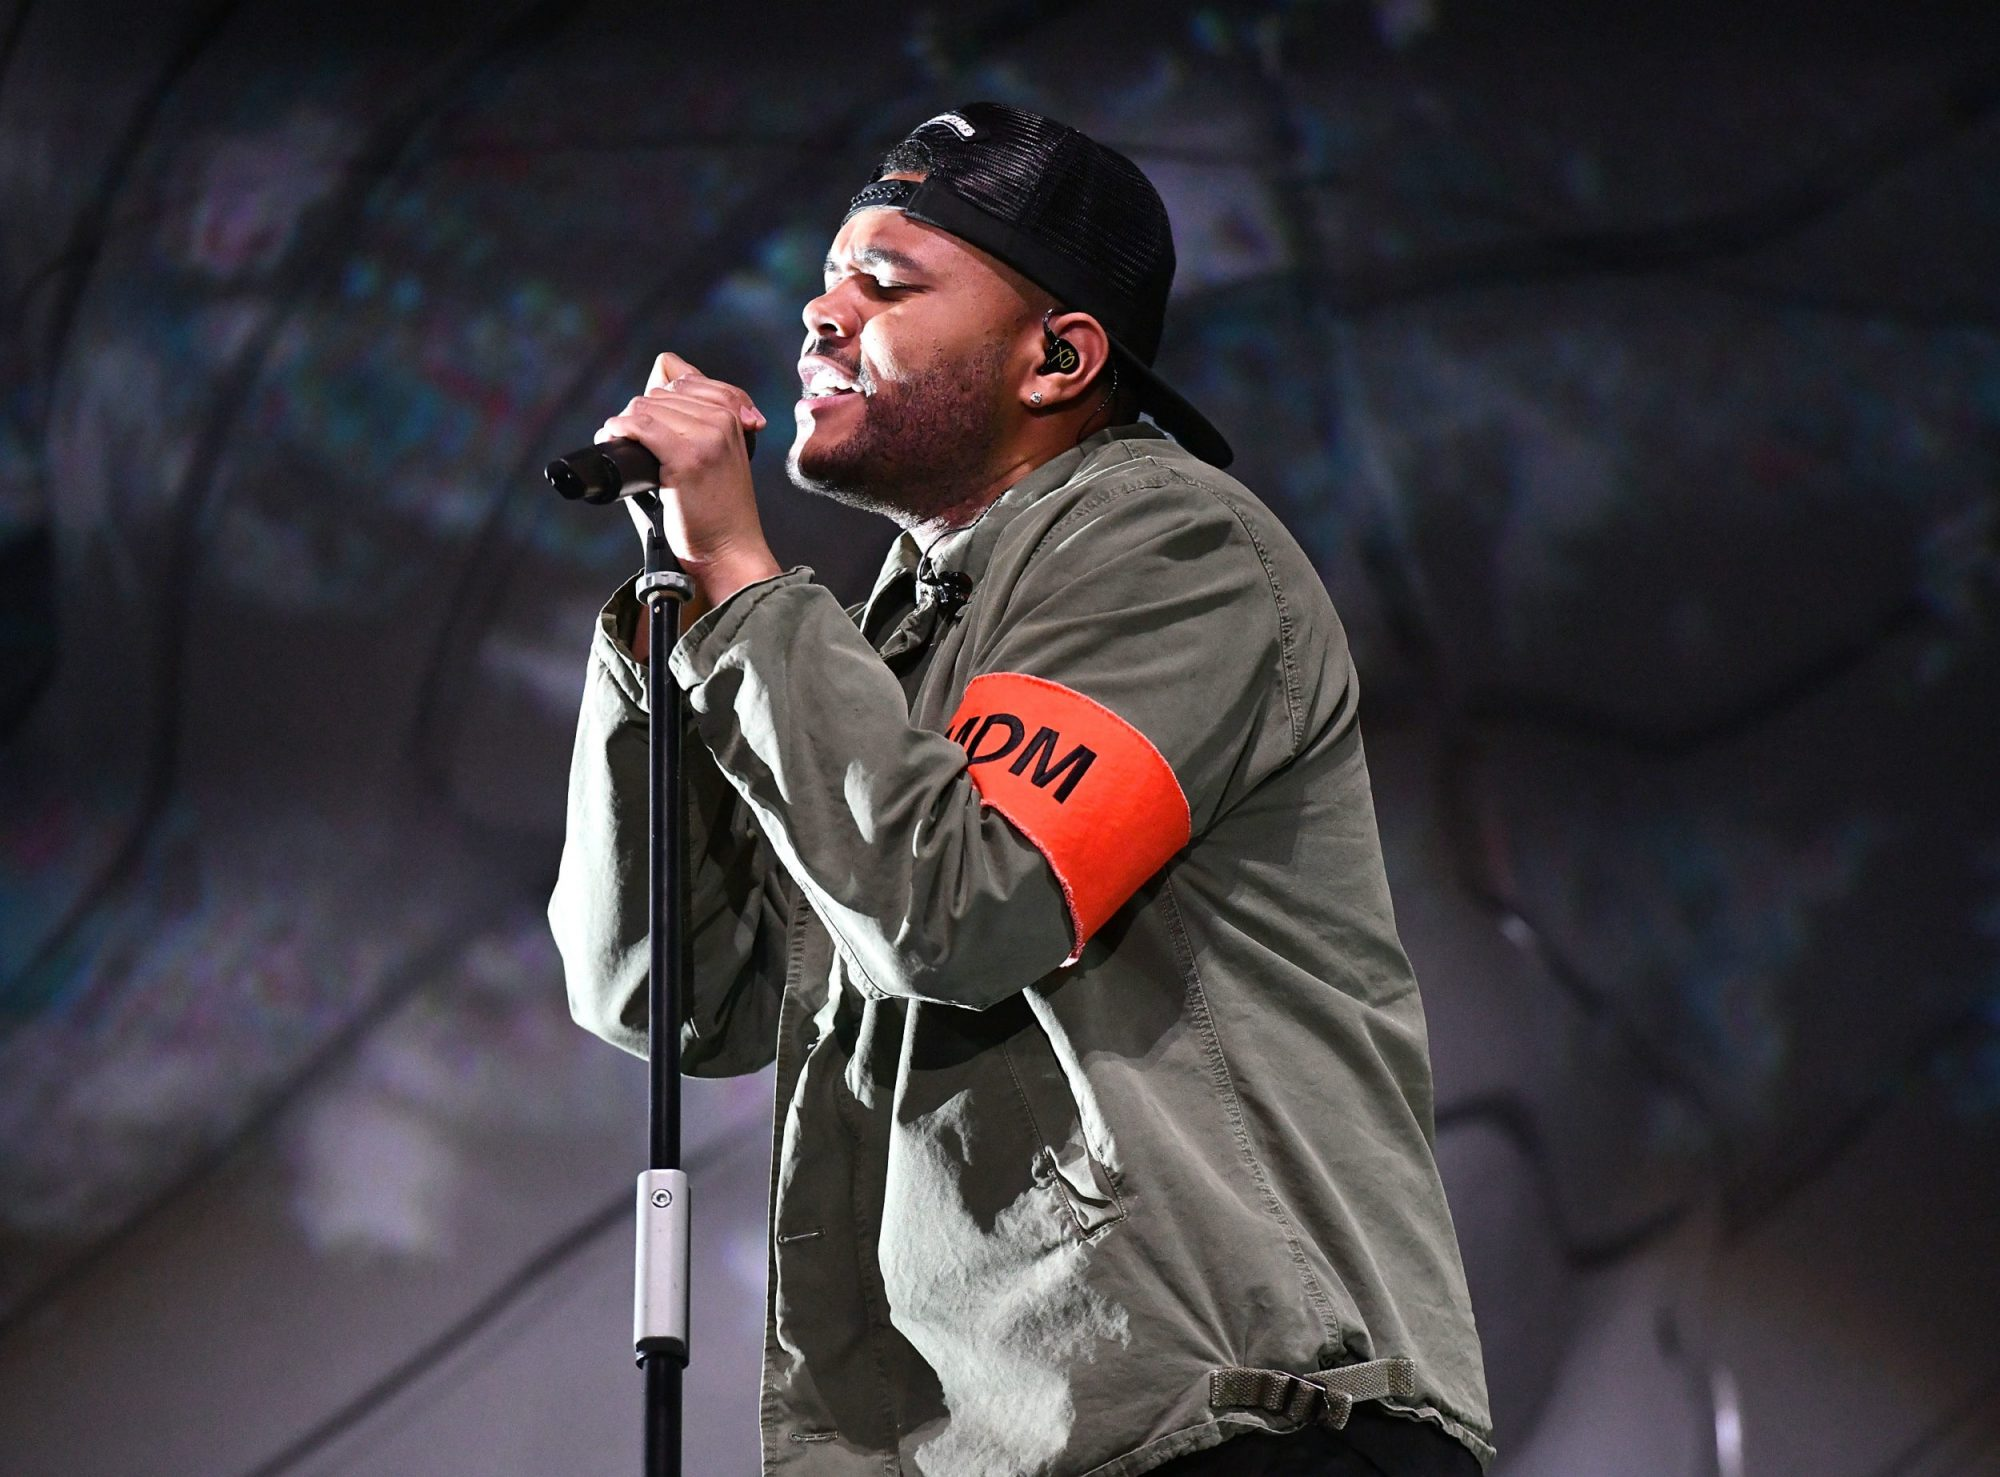 Photo of The Weeknd Performing at Coachella